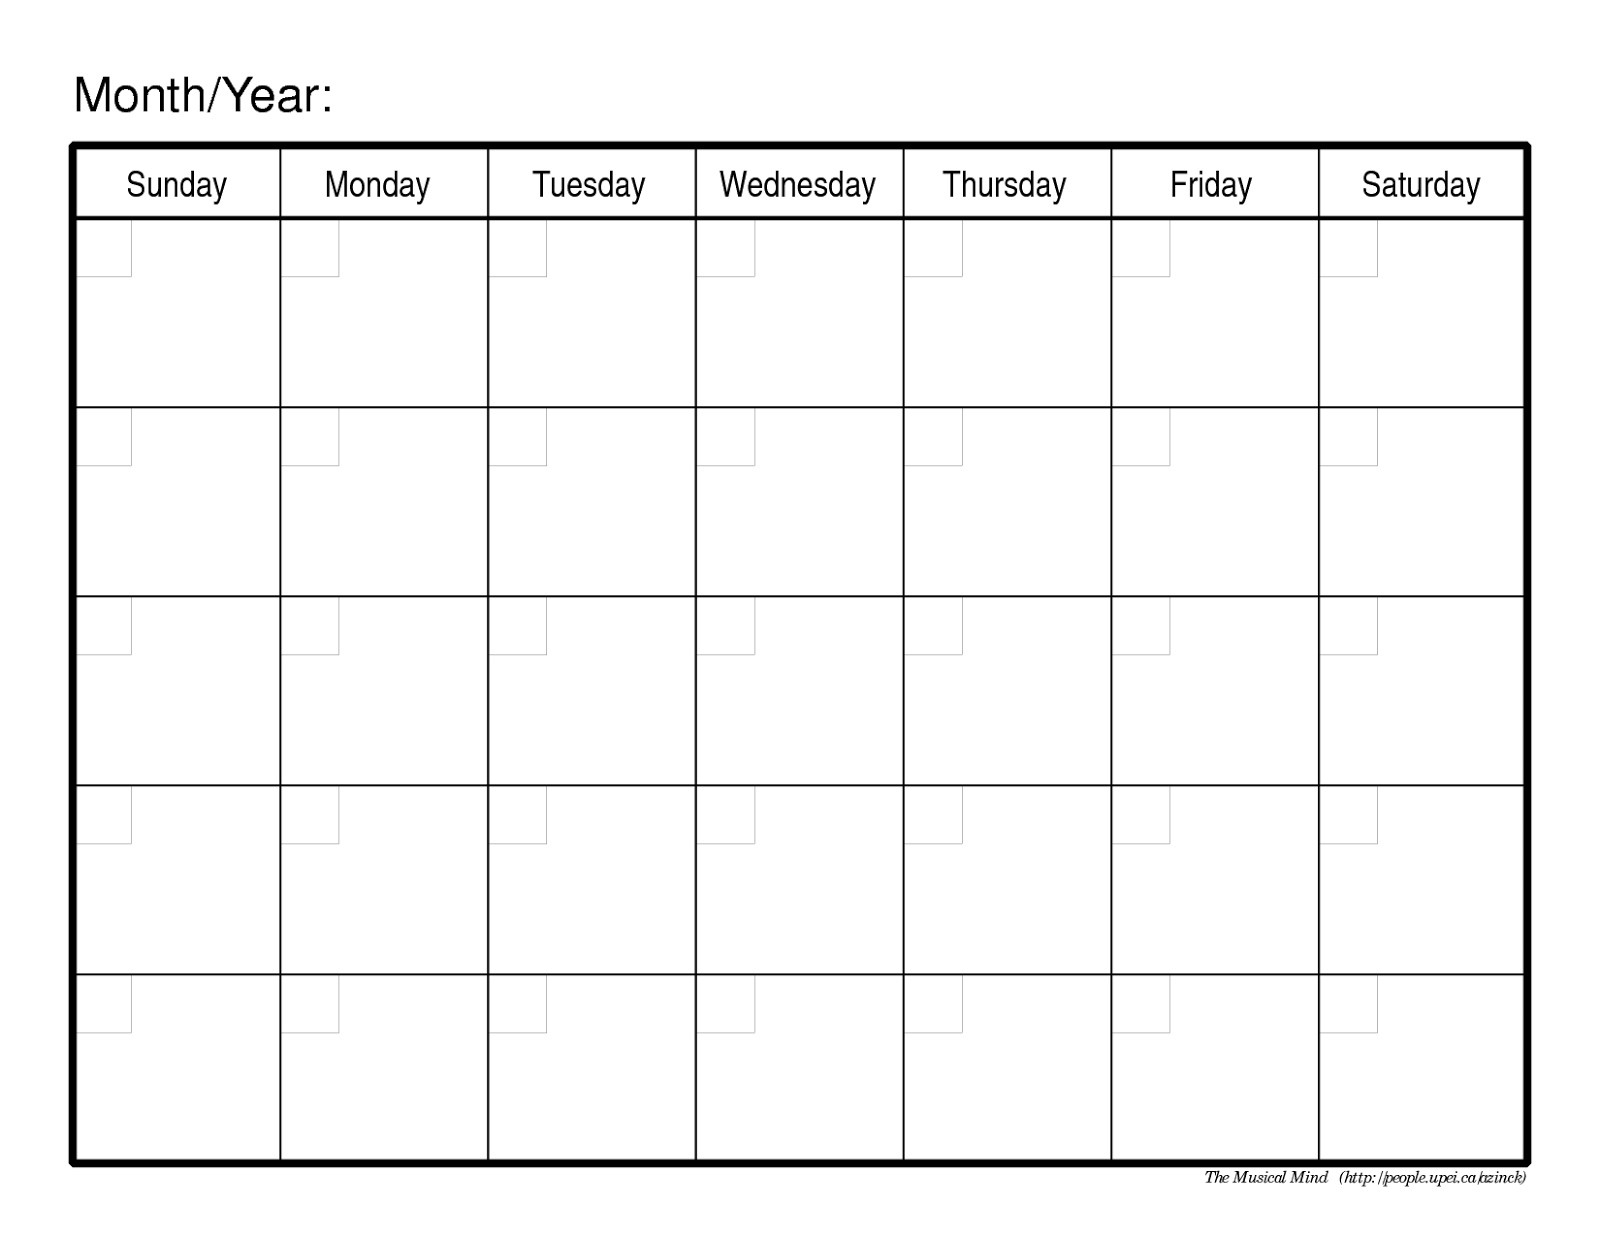 Blank Calendar No Dates - Wpa.wpart.co-Printable Monthly Calendar Sunday To Saturday No Dates